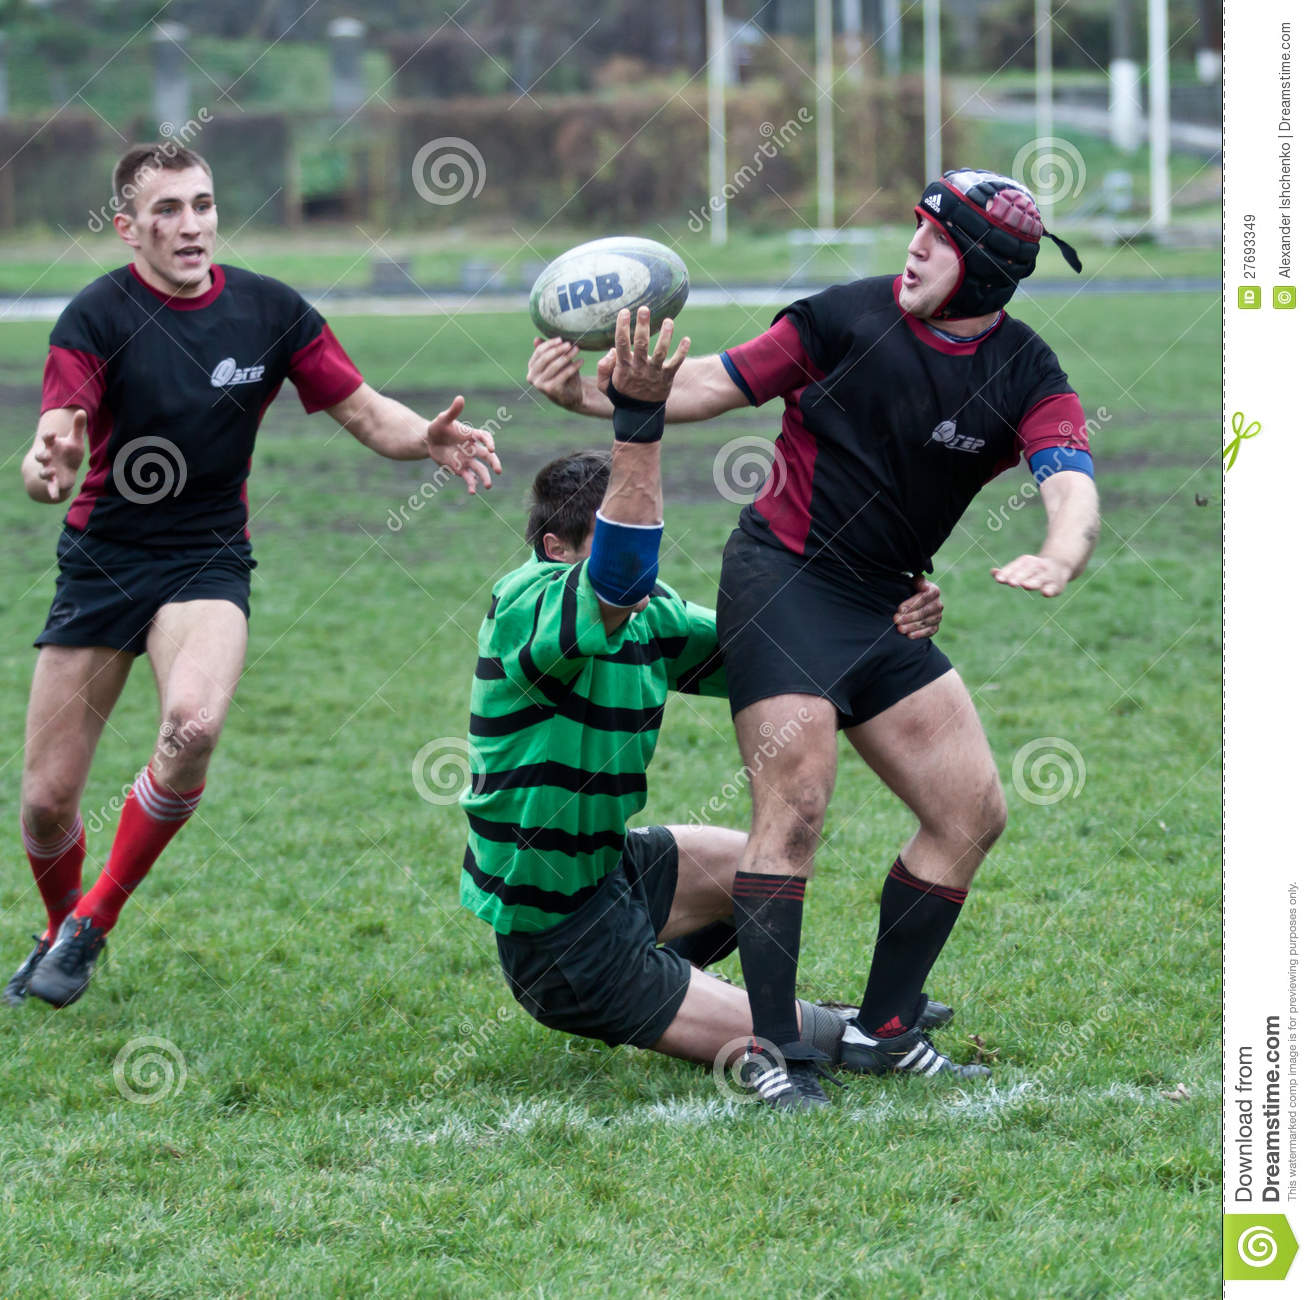 Green Rugby Player: Rugby League Match Editorial Stock Image